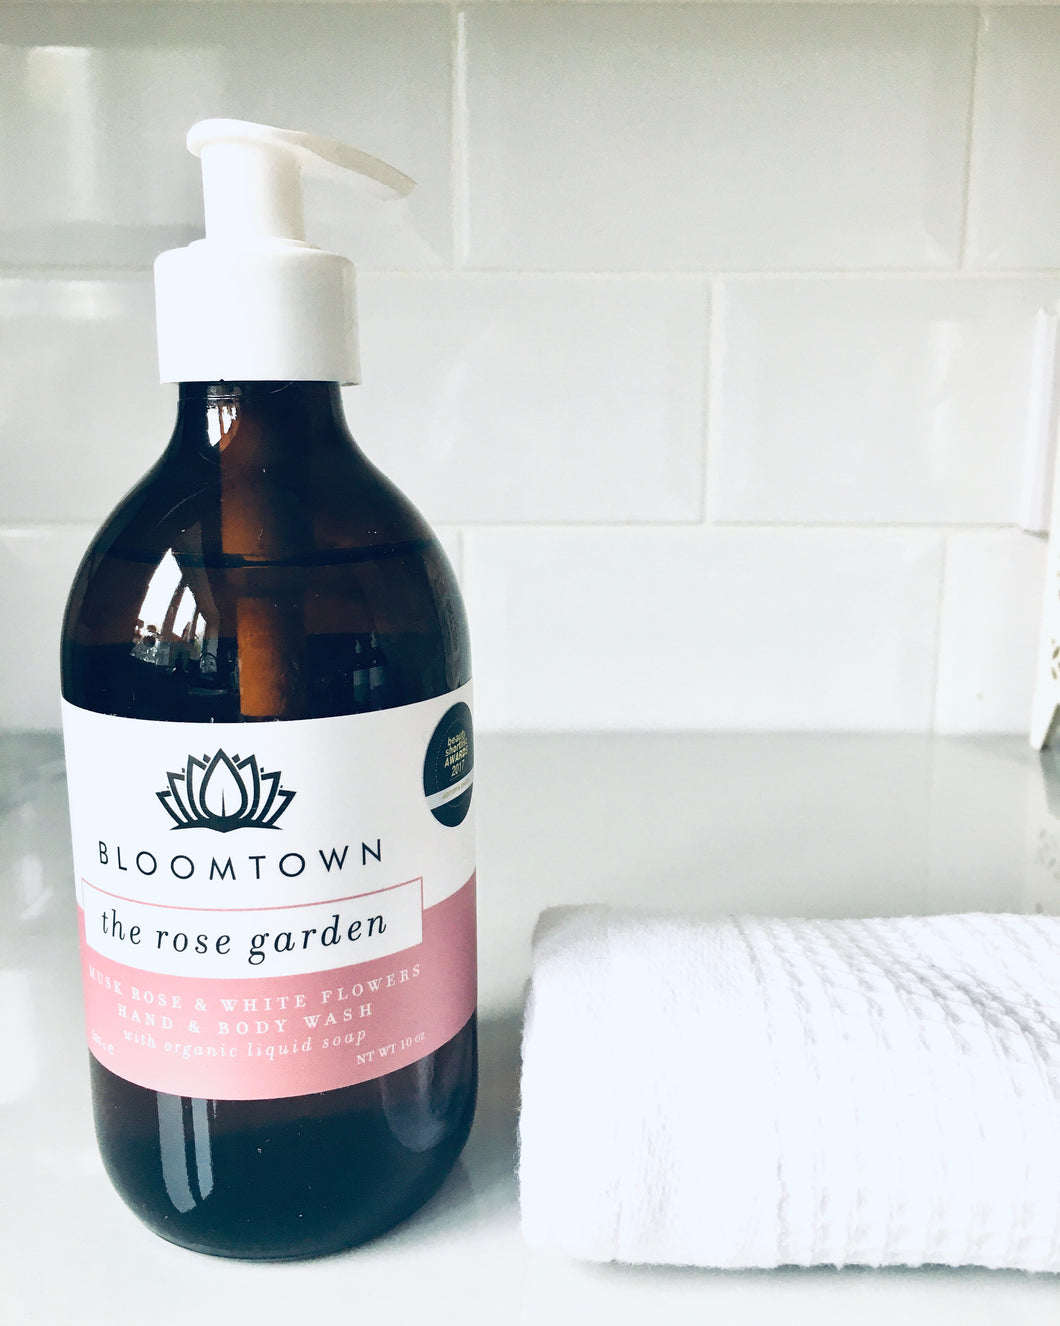 The Rose Garden Musk Rose & White Flowers Garden Body Wash